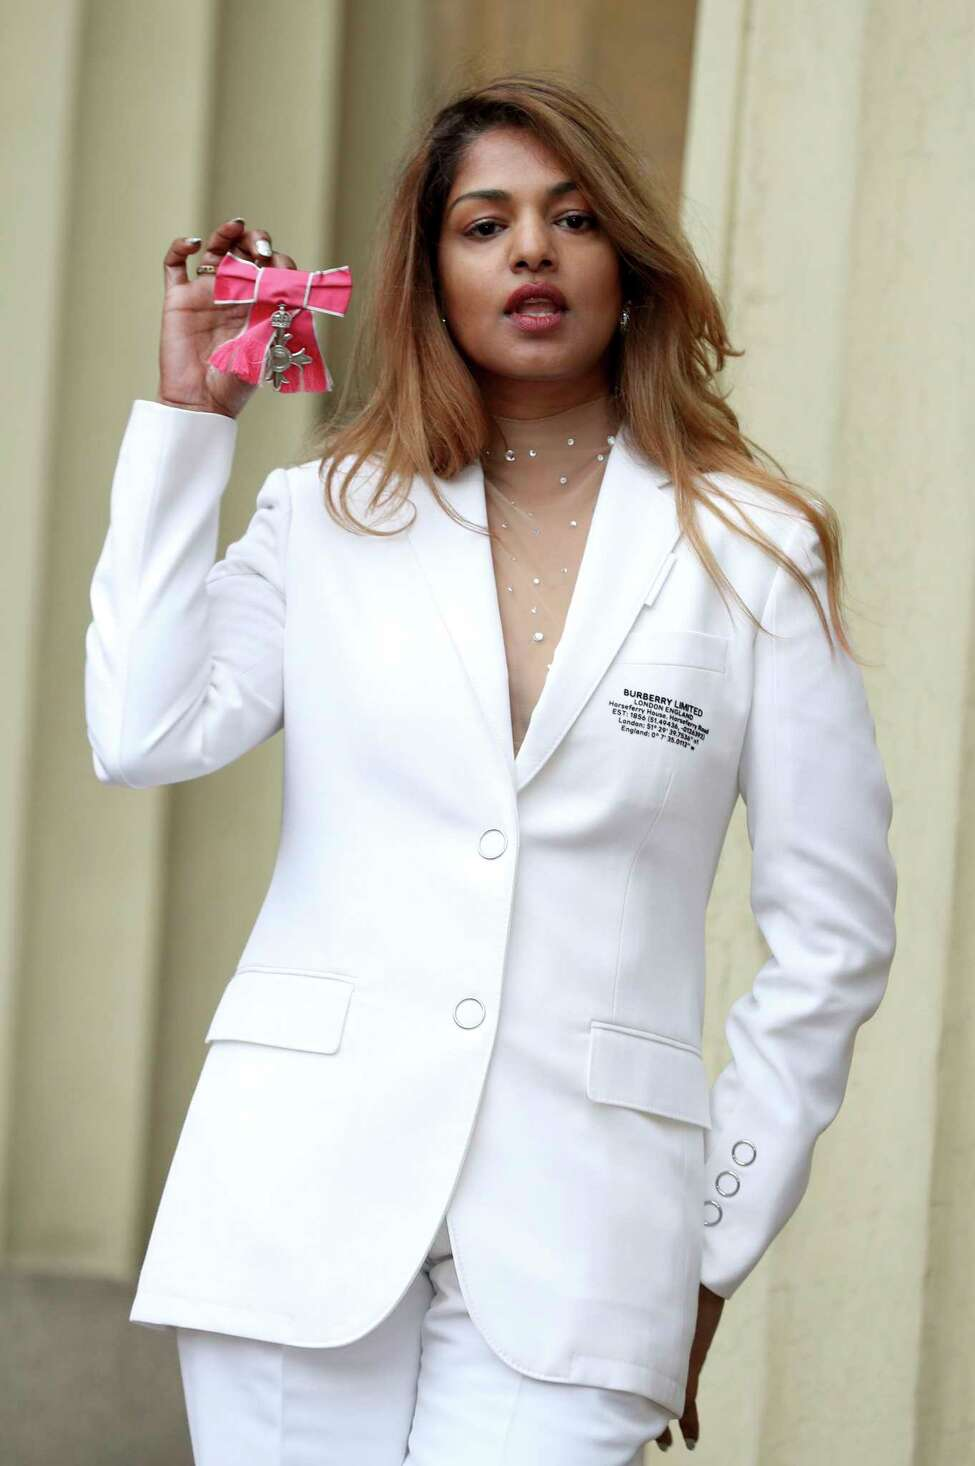 Rapper and singer MIA, real name Mathangi Arulpragasam, poses with her MBE award following an investiture ceremony at Buckingham Palace in London, Tuesday Jan, 14, 2020. The British Empire award is presented in royal recognition of contributions to the arts, sciences, and charitable works. (Yui Mok/PA via AP)